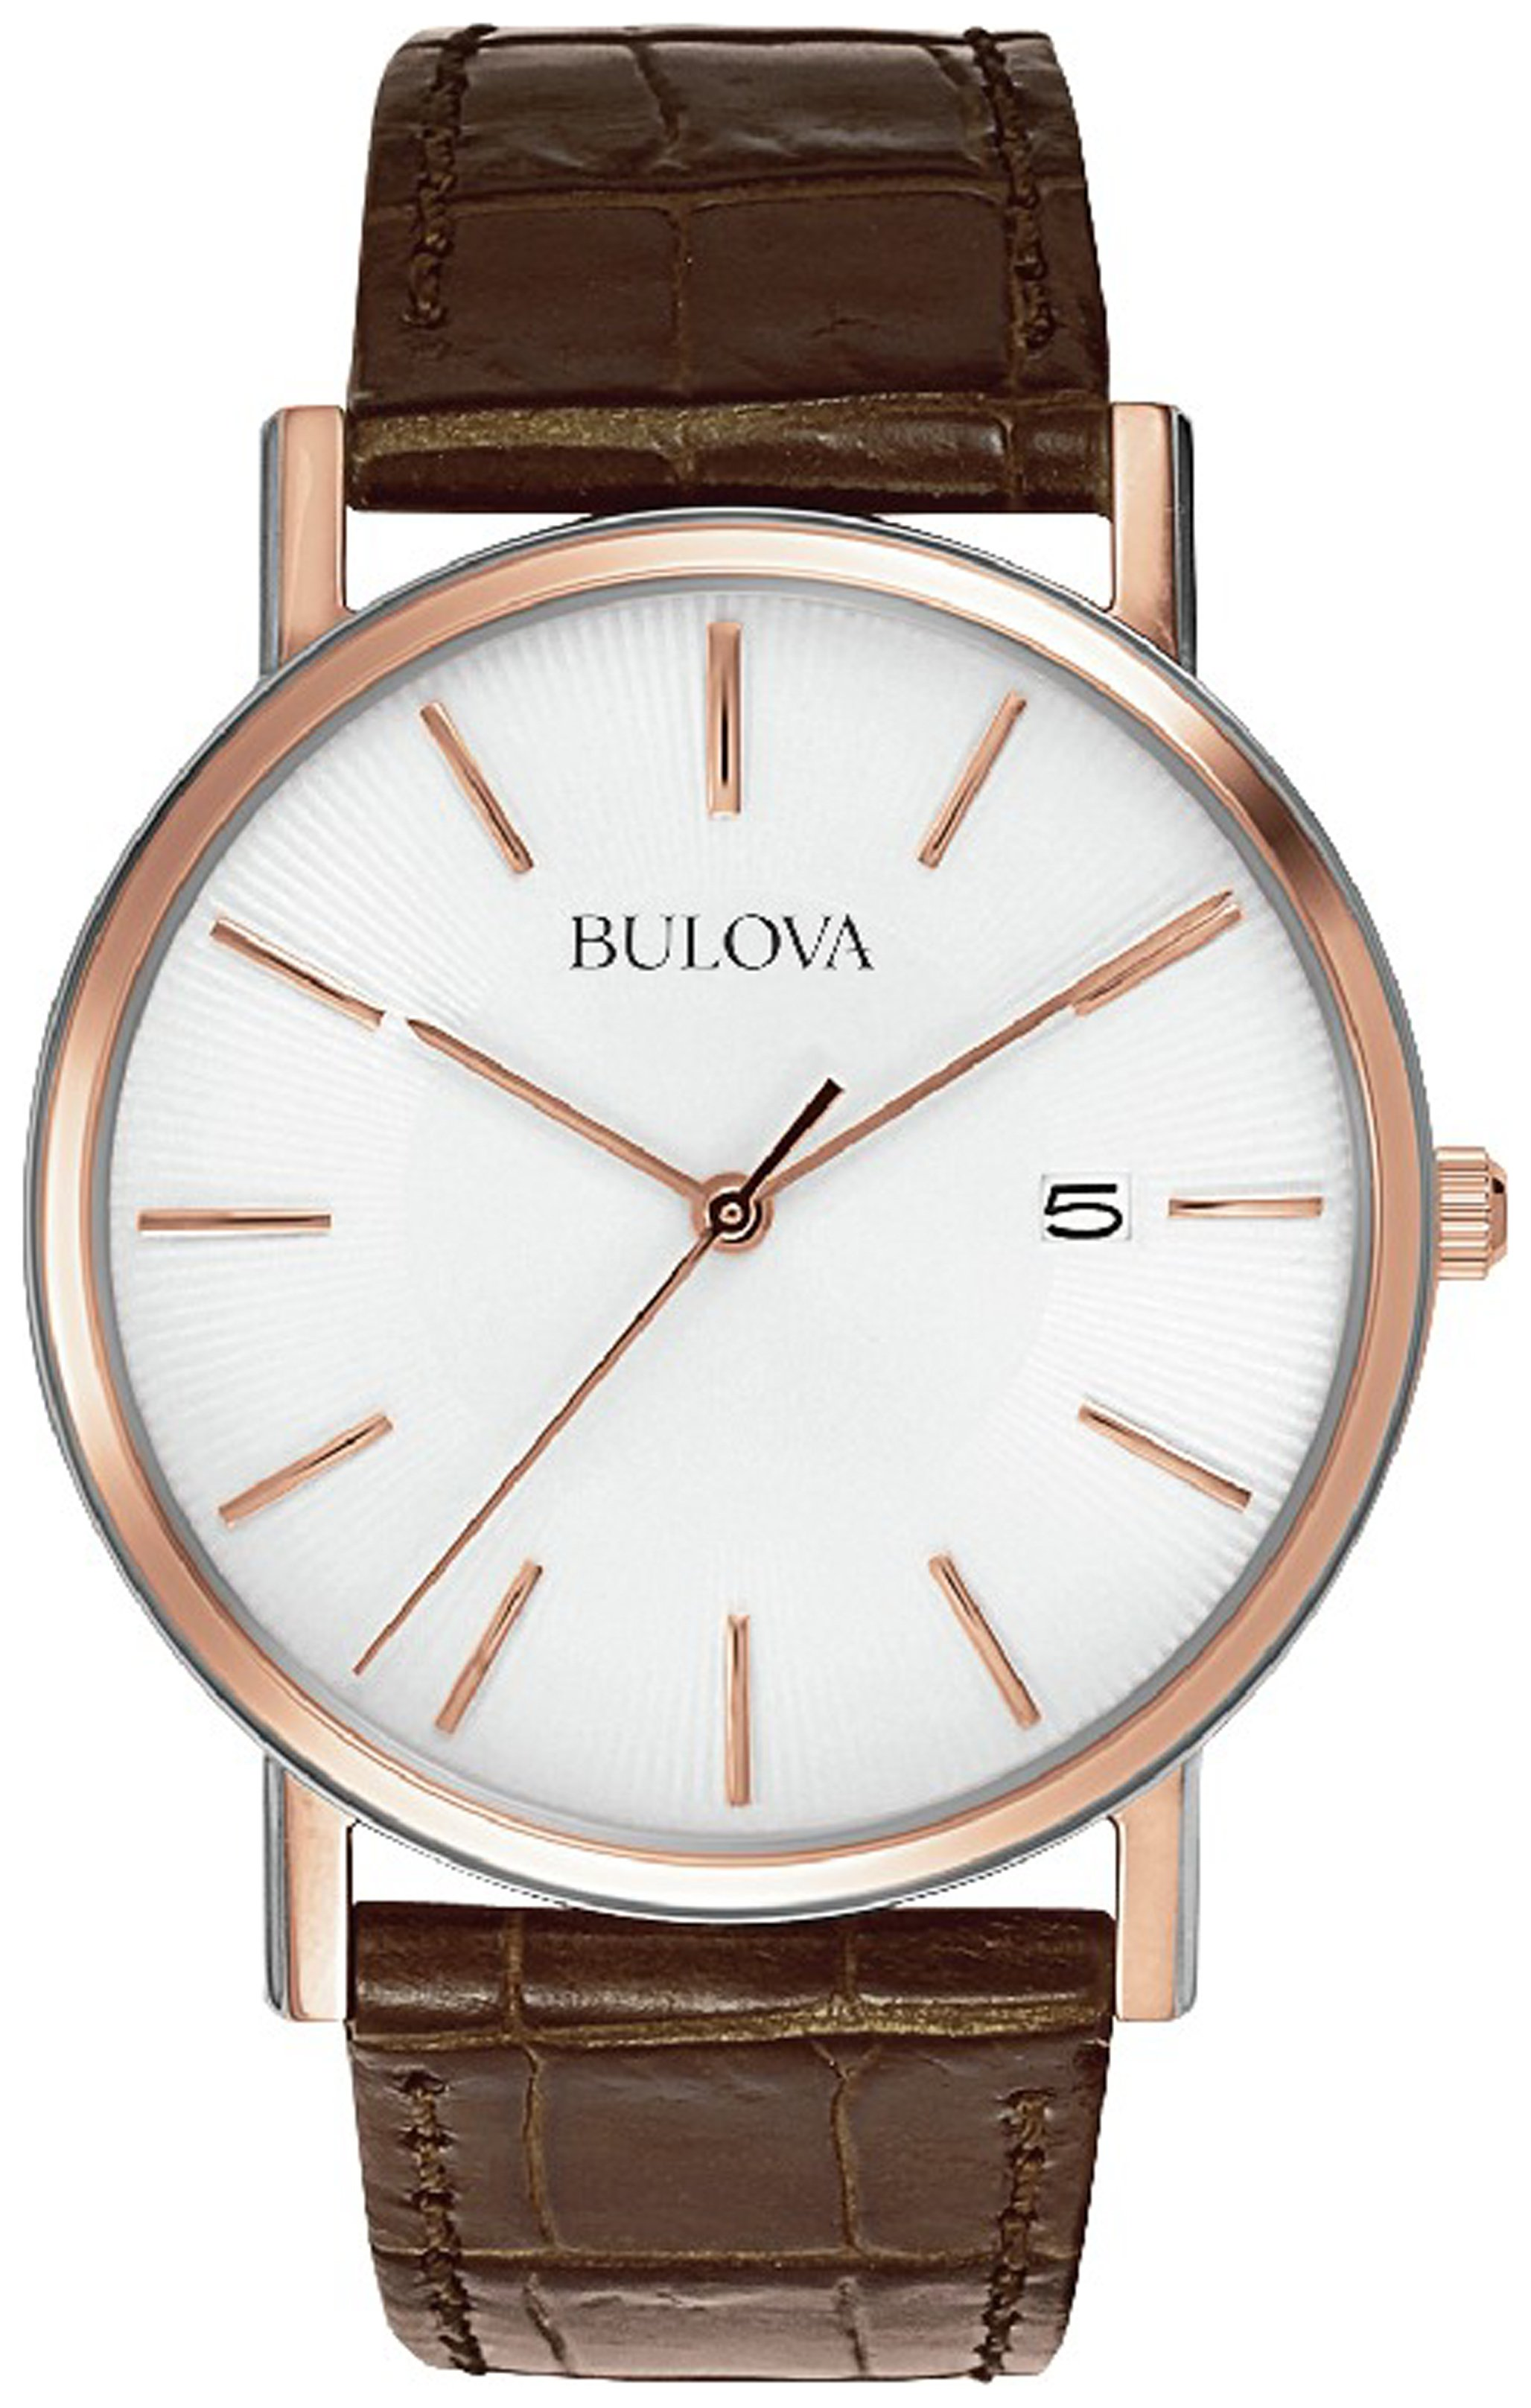 Image of Bulova - Mens Rose Steel Brown Leather Strap - Watch